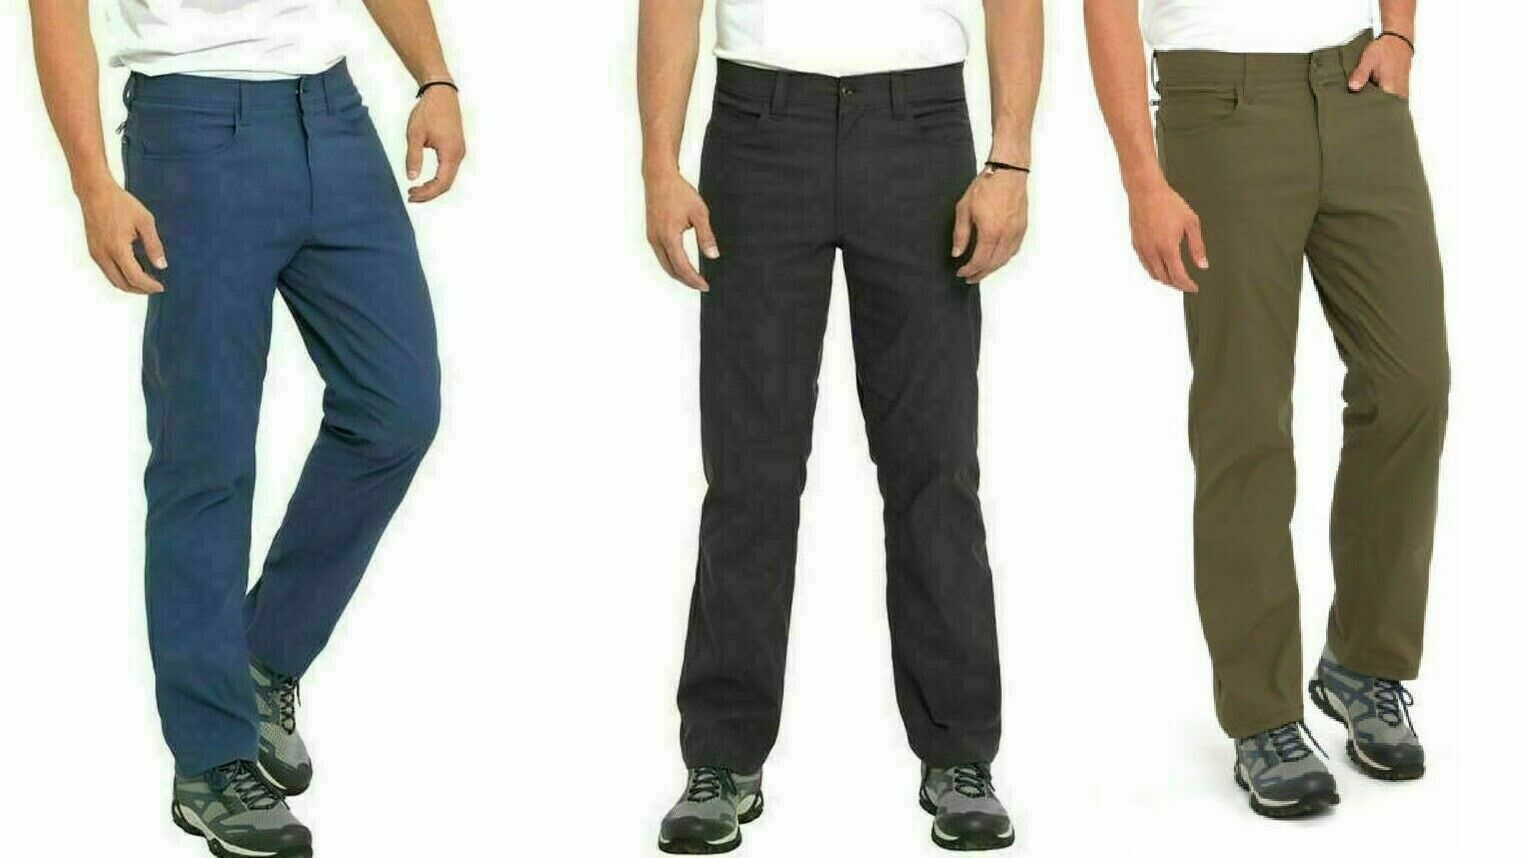 Primary image for Eddie Bauer Men's Trek Pant Water Repellent Secure Pockets 2-Way Stretch NEW